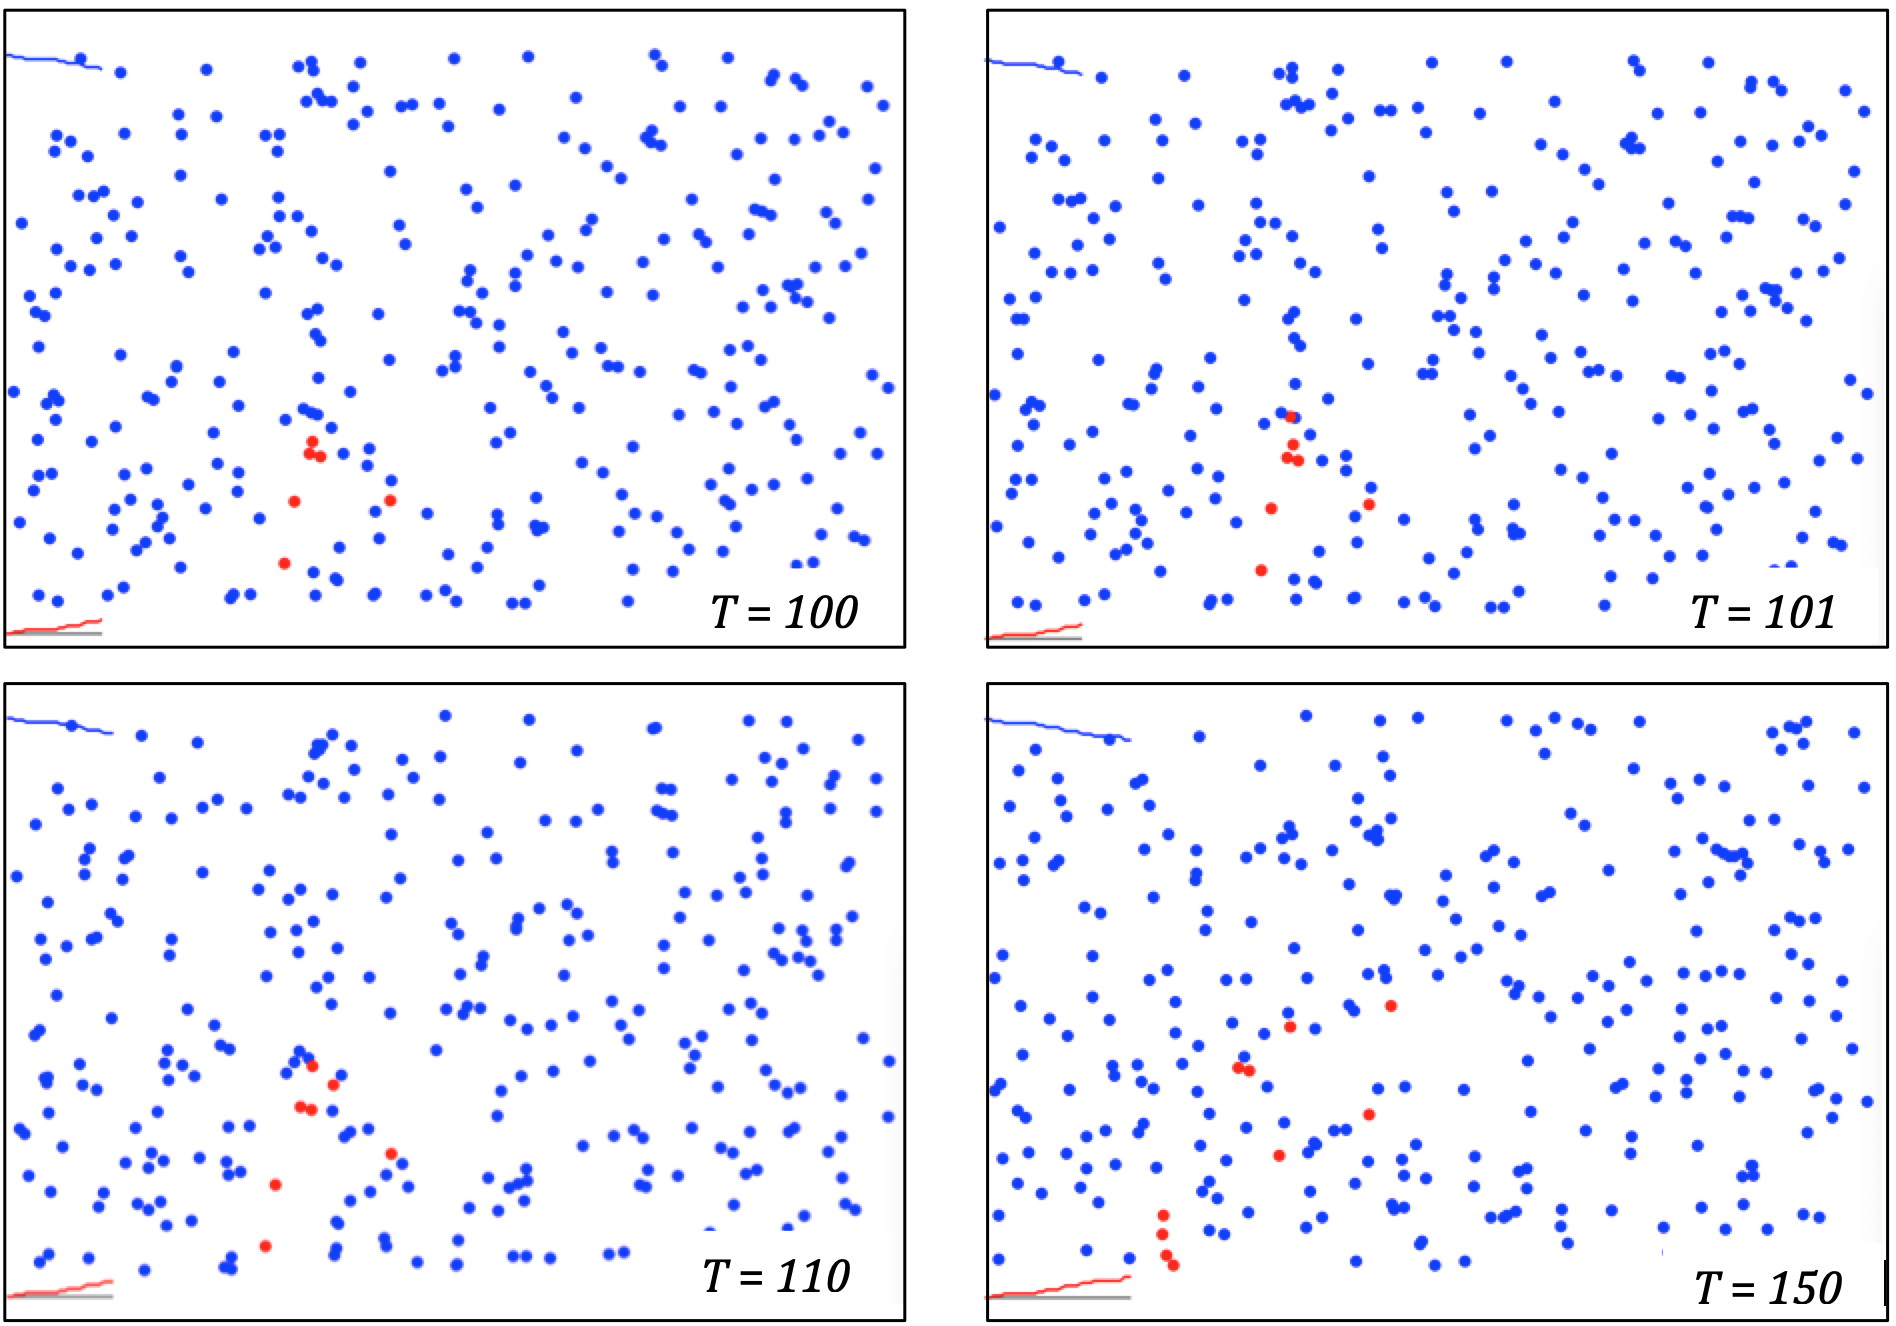 Four panels. In each is a simulation of red and blue dots. The panels are labels t=100, t=101, t-110 and t=150